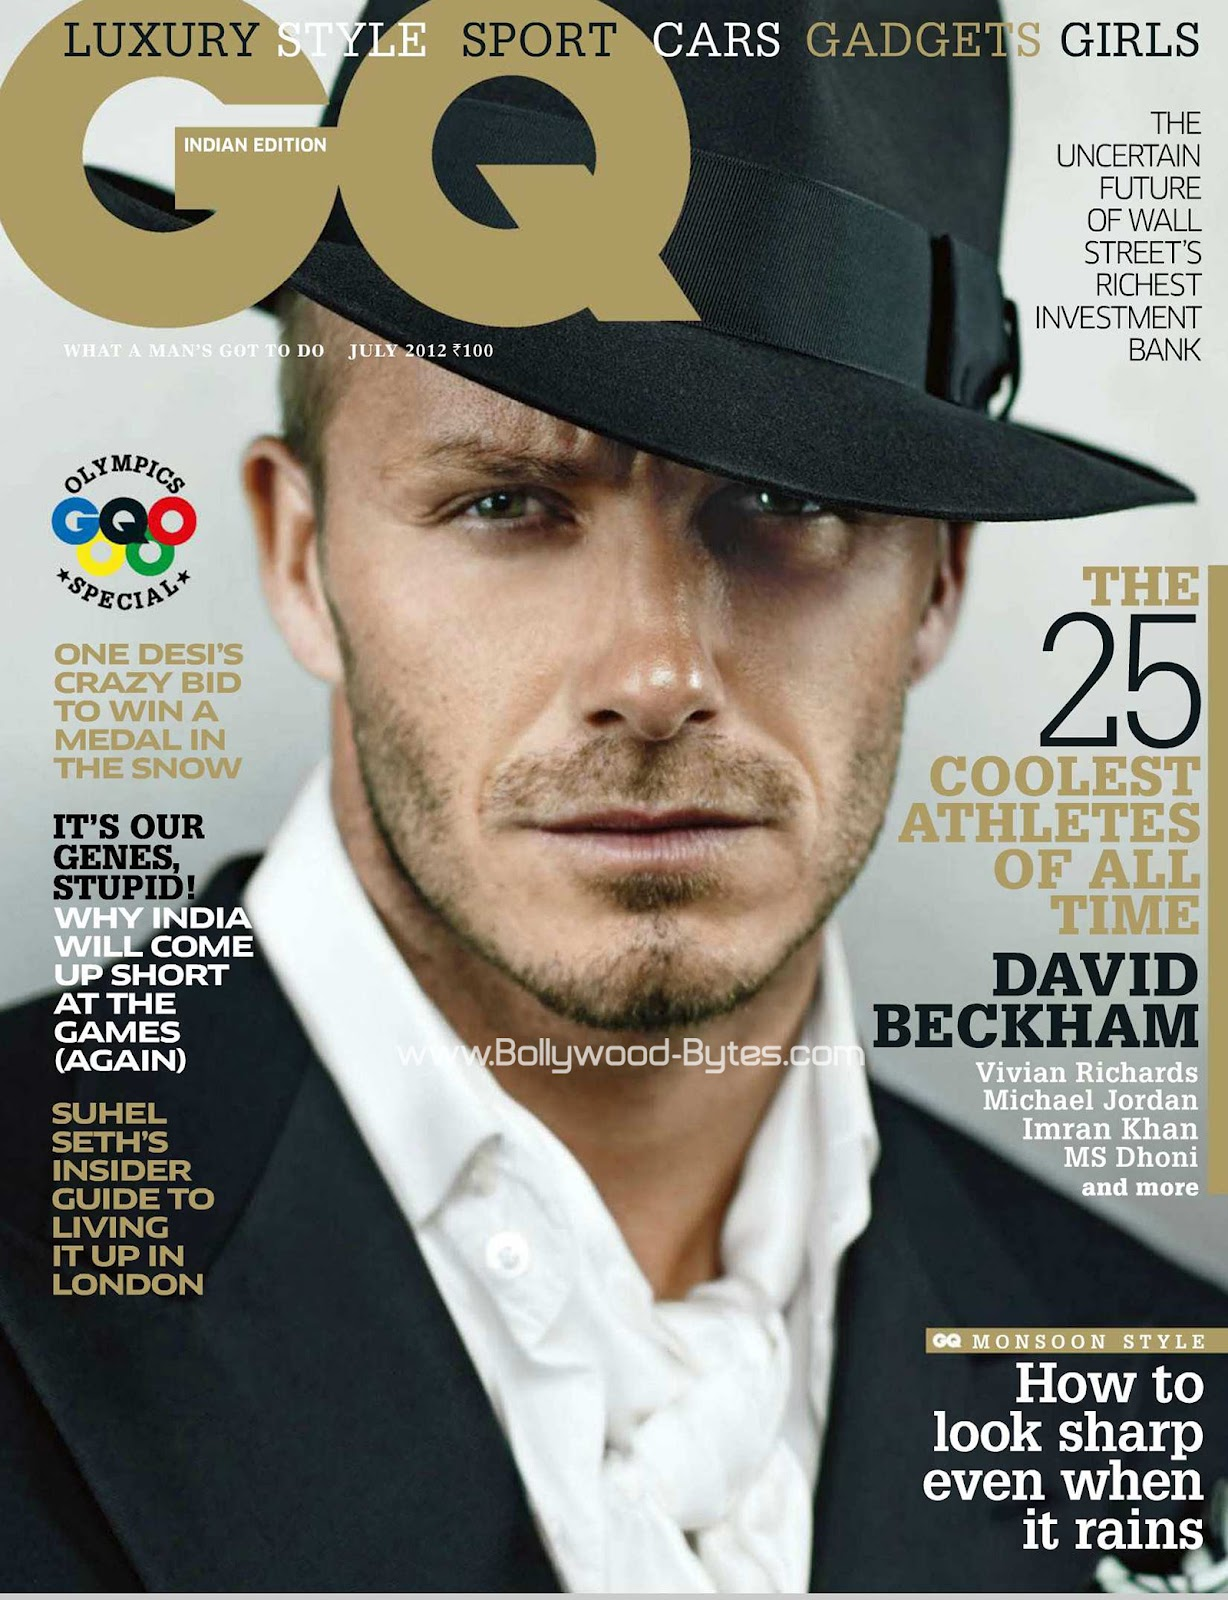 http://1.bp.blogspot.com/-zRRjrRfdB8U/T_7NqVX4ZXI/AAAAAAAALuI/KF_ynmnzrWc/s1600/David-Beckham-on-the-cover-GQ-India-July-2012.jpg